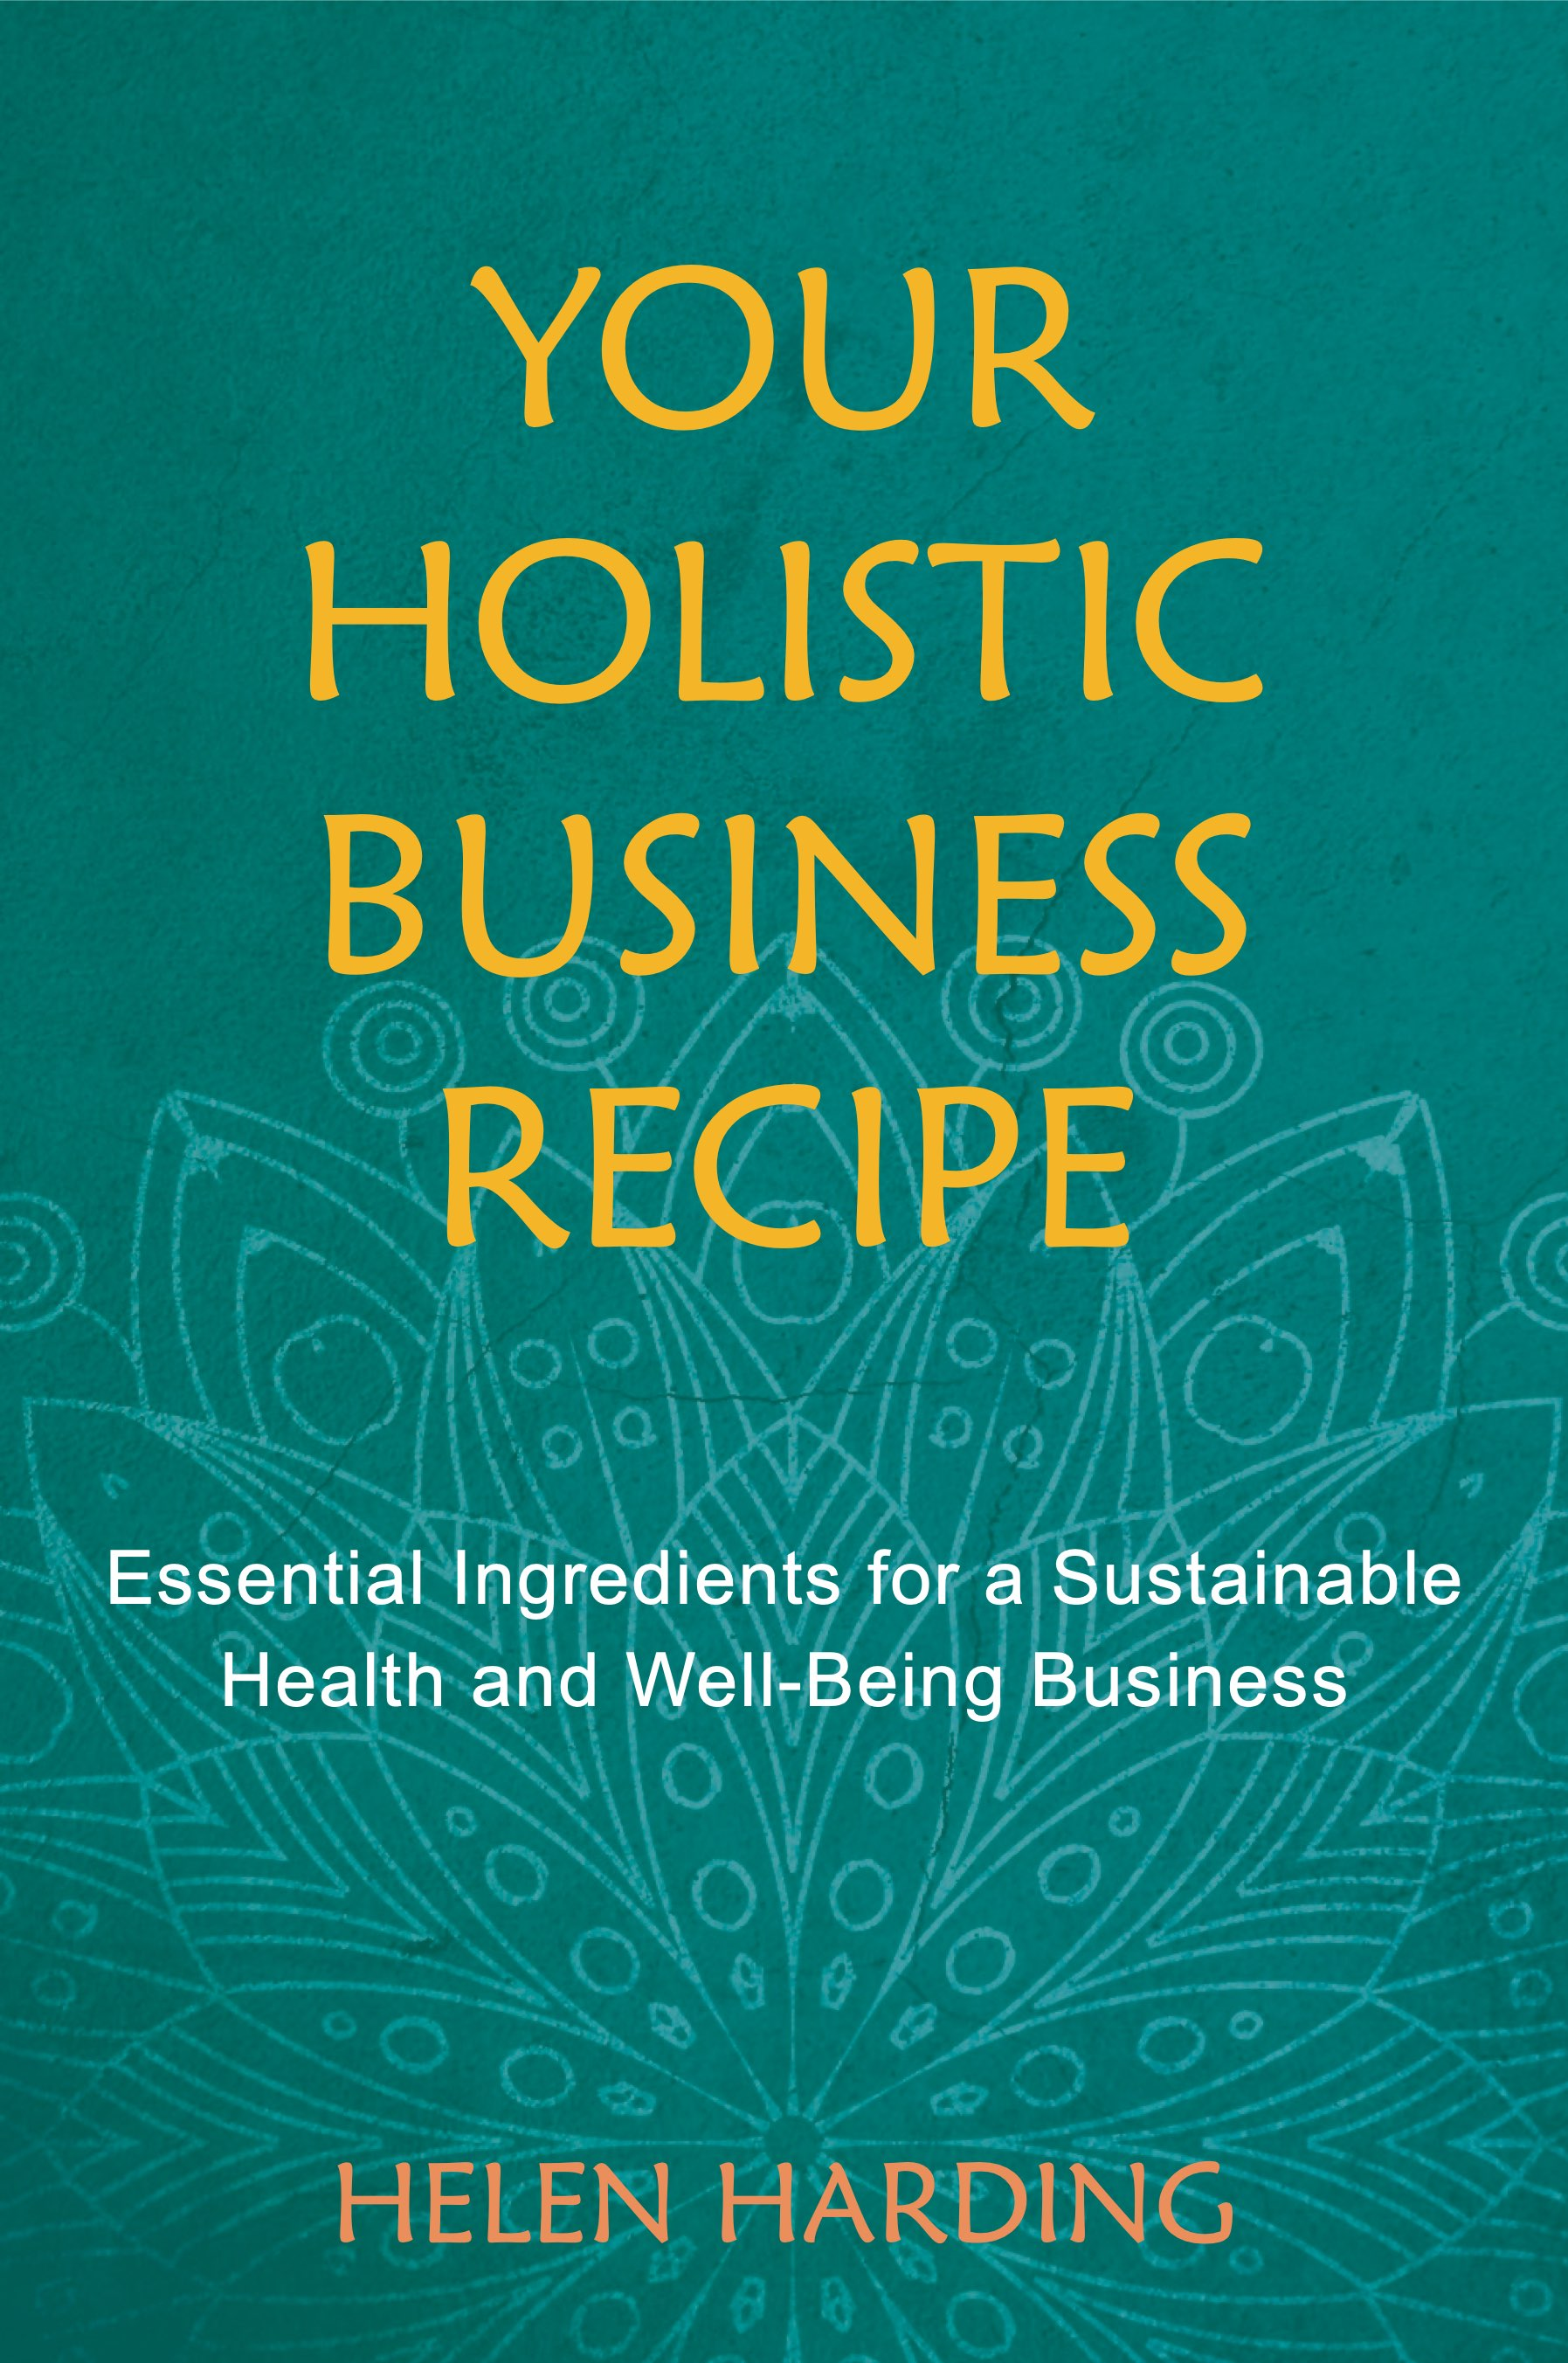 Your Holistic Business Recipe: Essential Ingredients for a Sustainable Health and Well-being Business